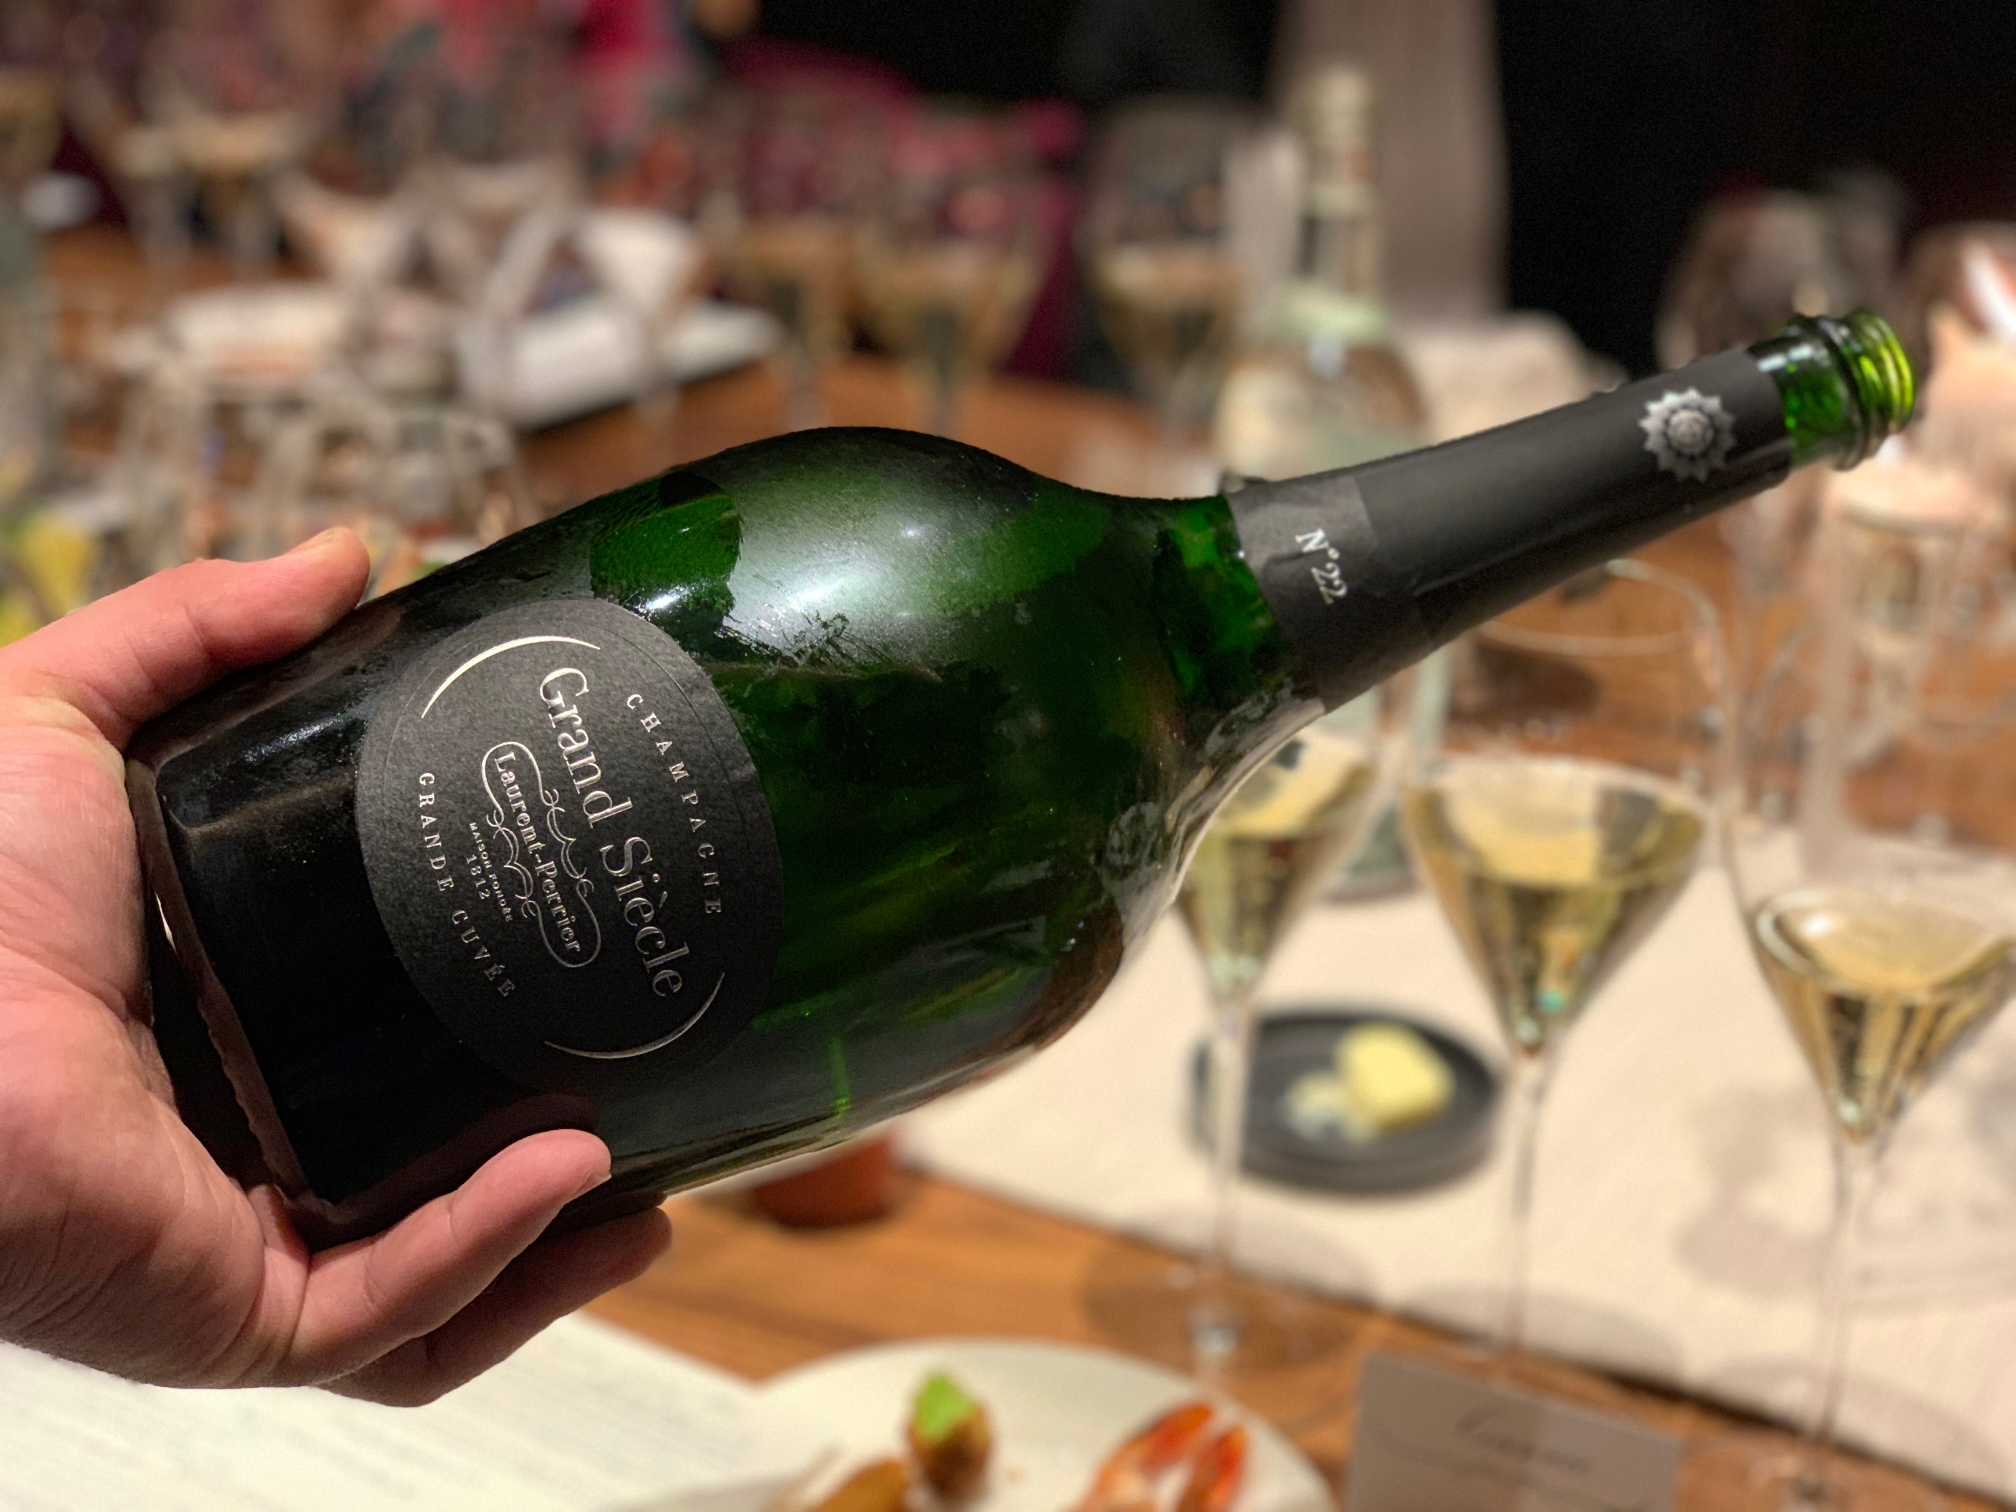 Grand Siècle No. 22 (2004, 2002, 1999 vintages with 13 years of cellar aging before disgorgement). While 750 ml offerings of this iteration were previously released in the US, magnums—priced at $400—will launch in fall 2019